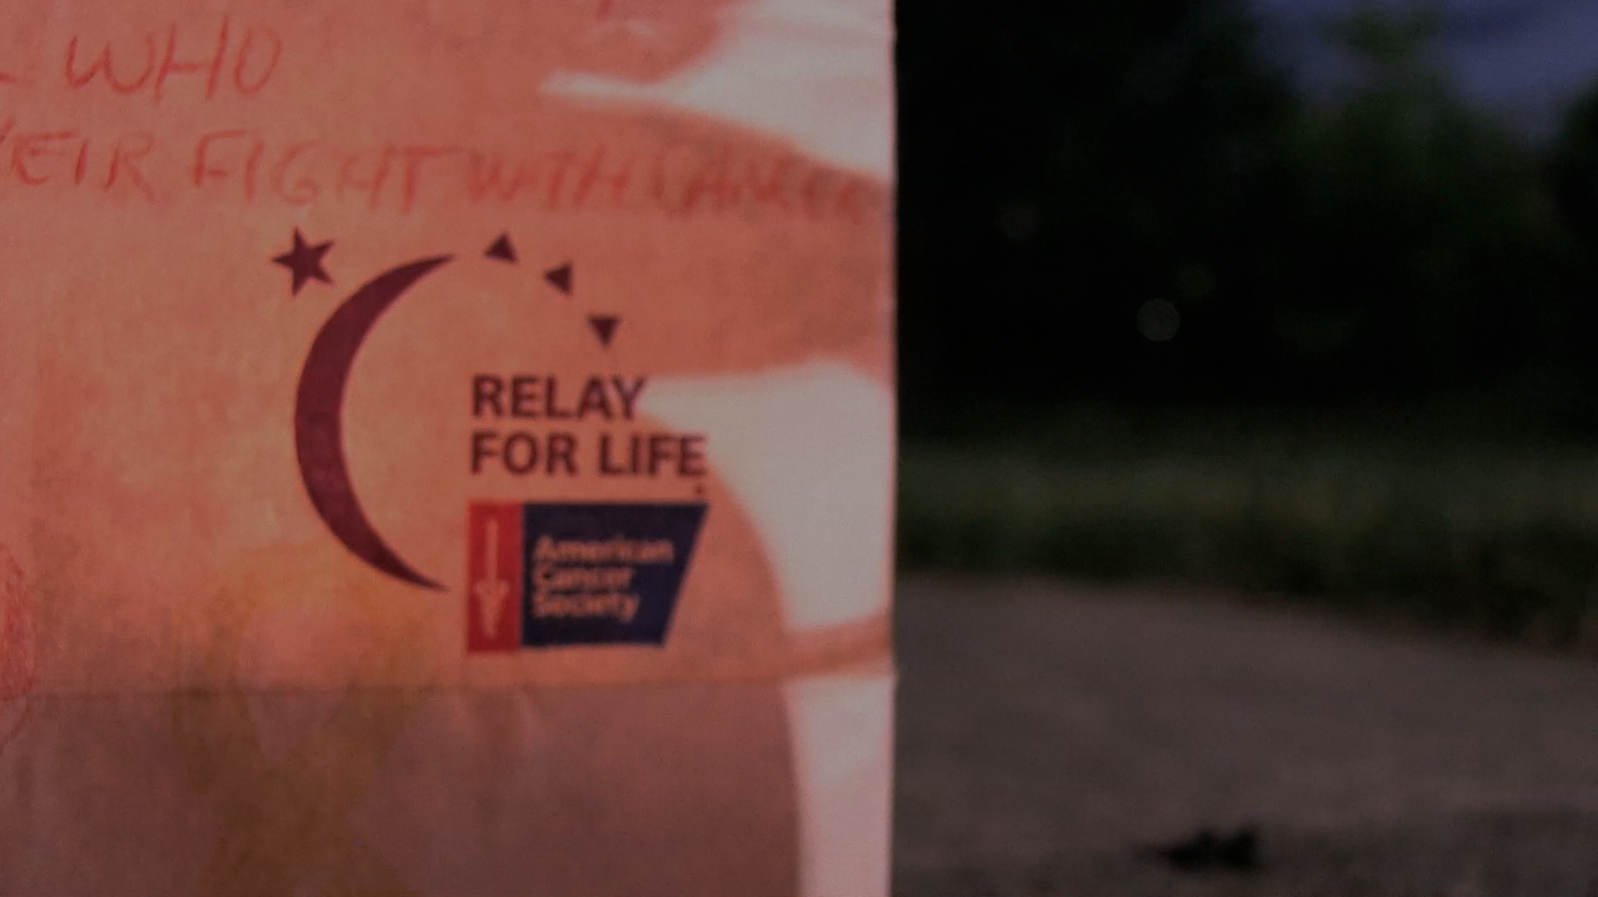 Relay for Life – 2013